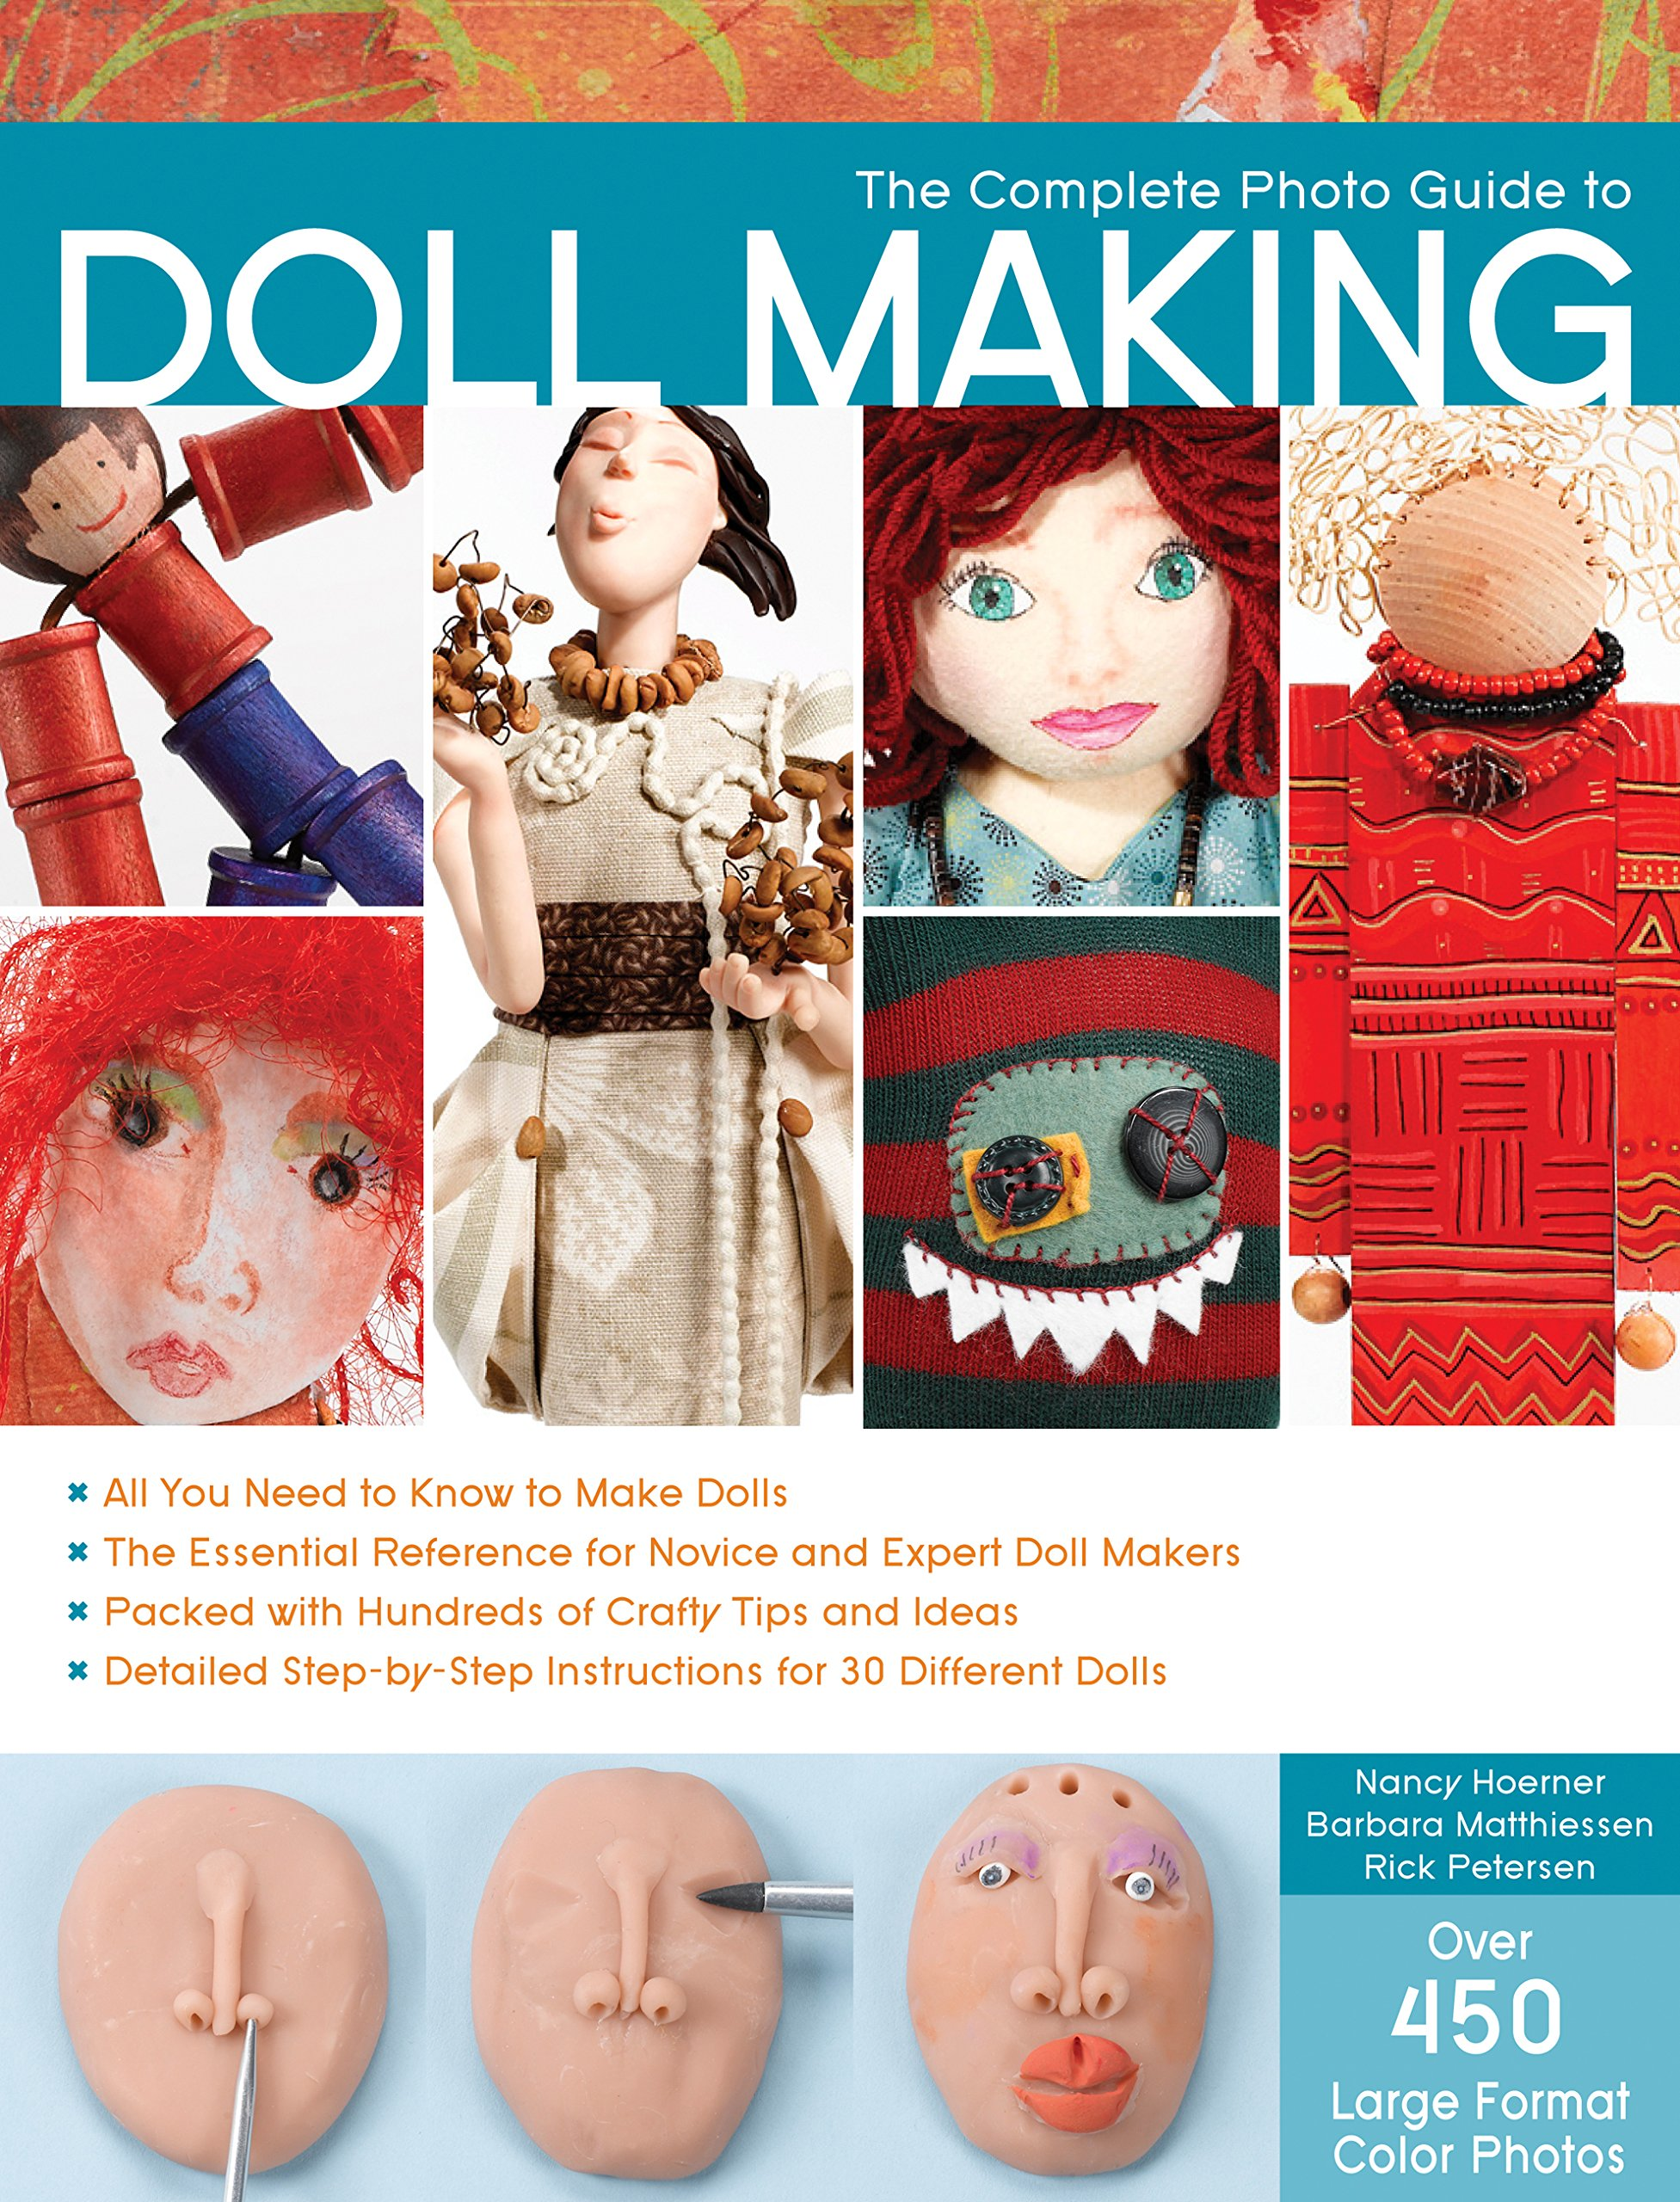 The Complete Photo Guide to Doll Making: *All You Need to Know to Make Dolls * The Essential Reference for Novice and Expert Doll Makers *Packed with ... Instructions for 30 Different Dolls